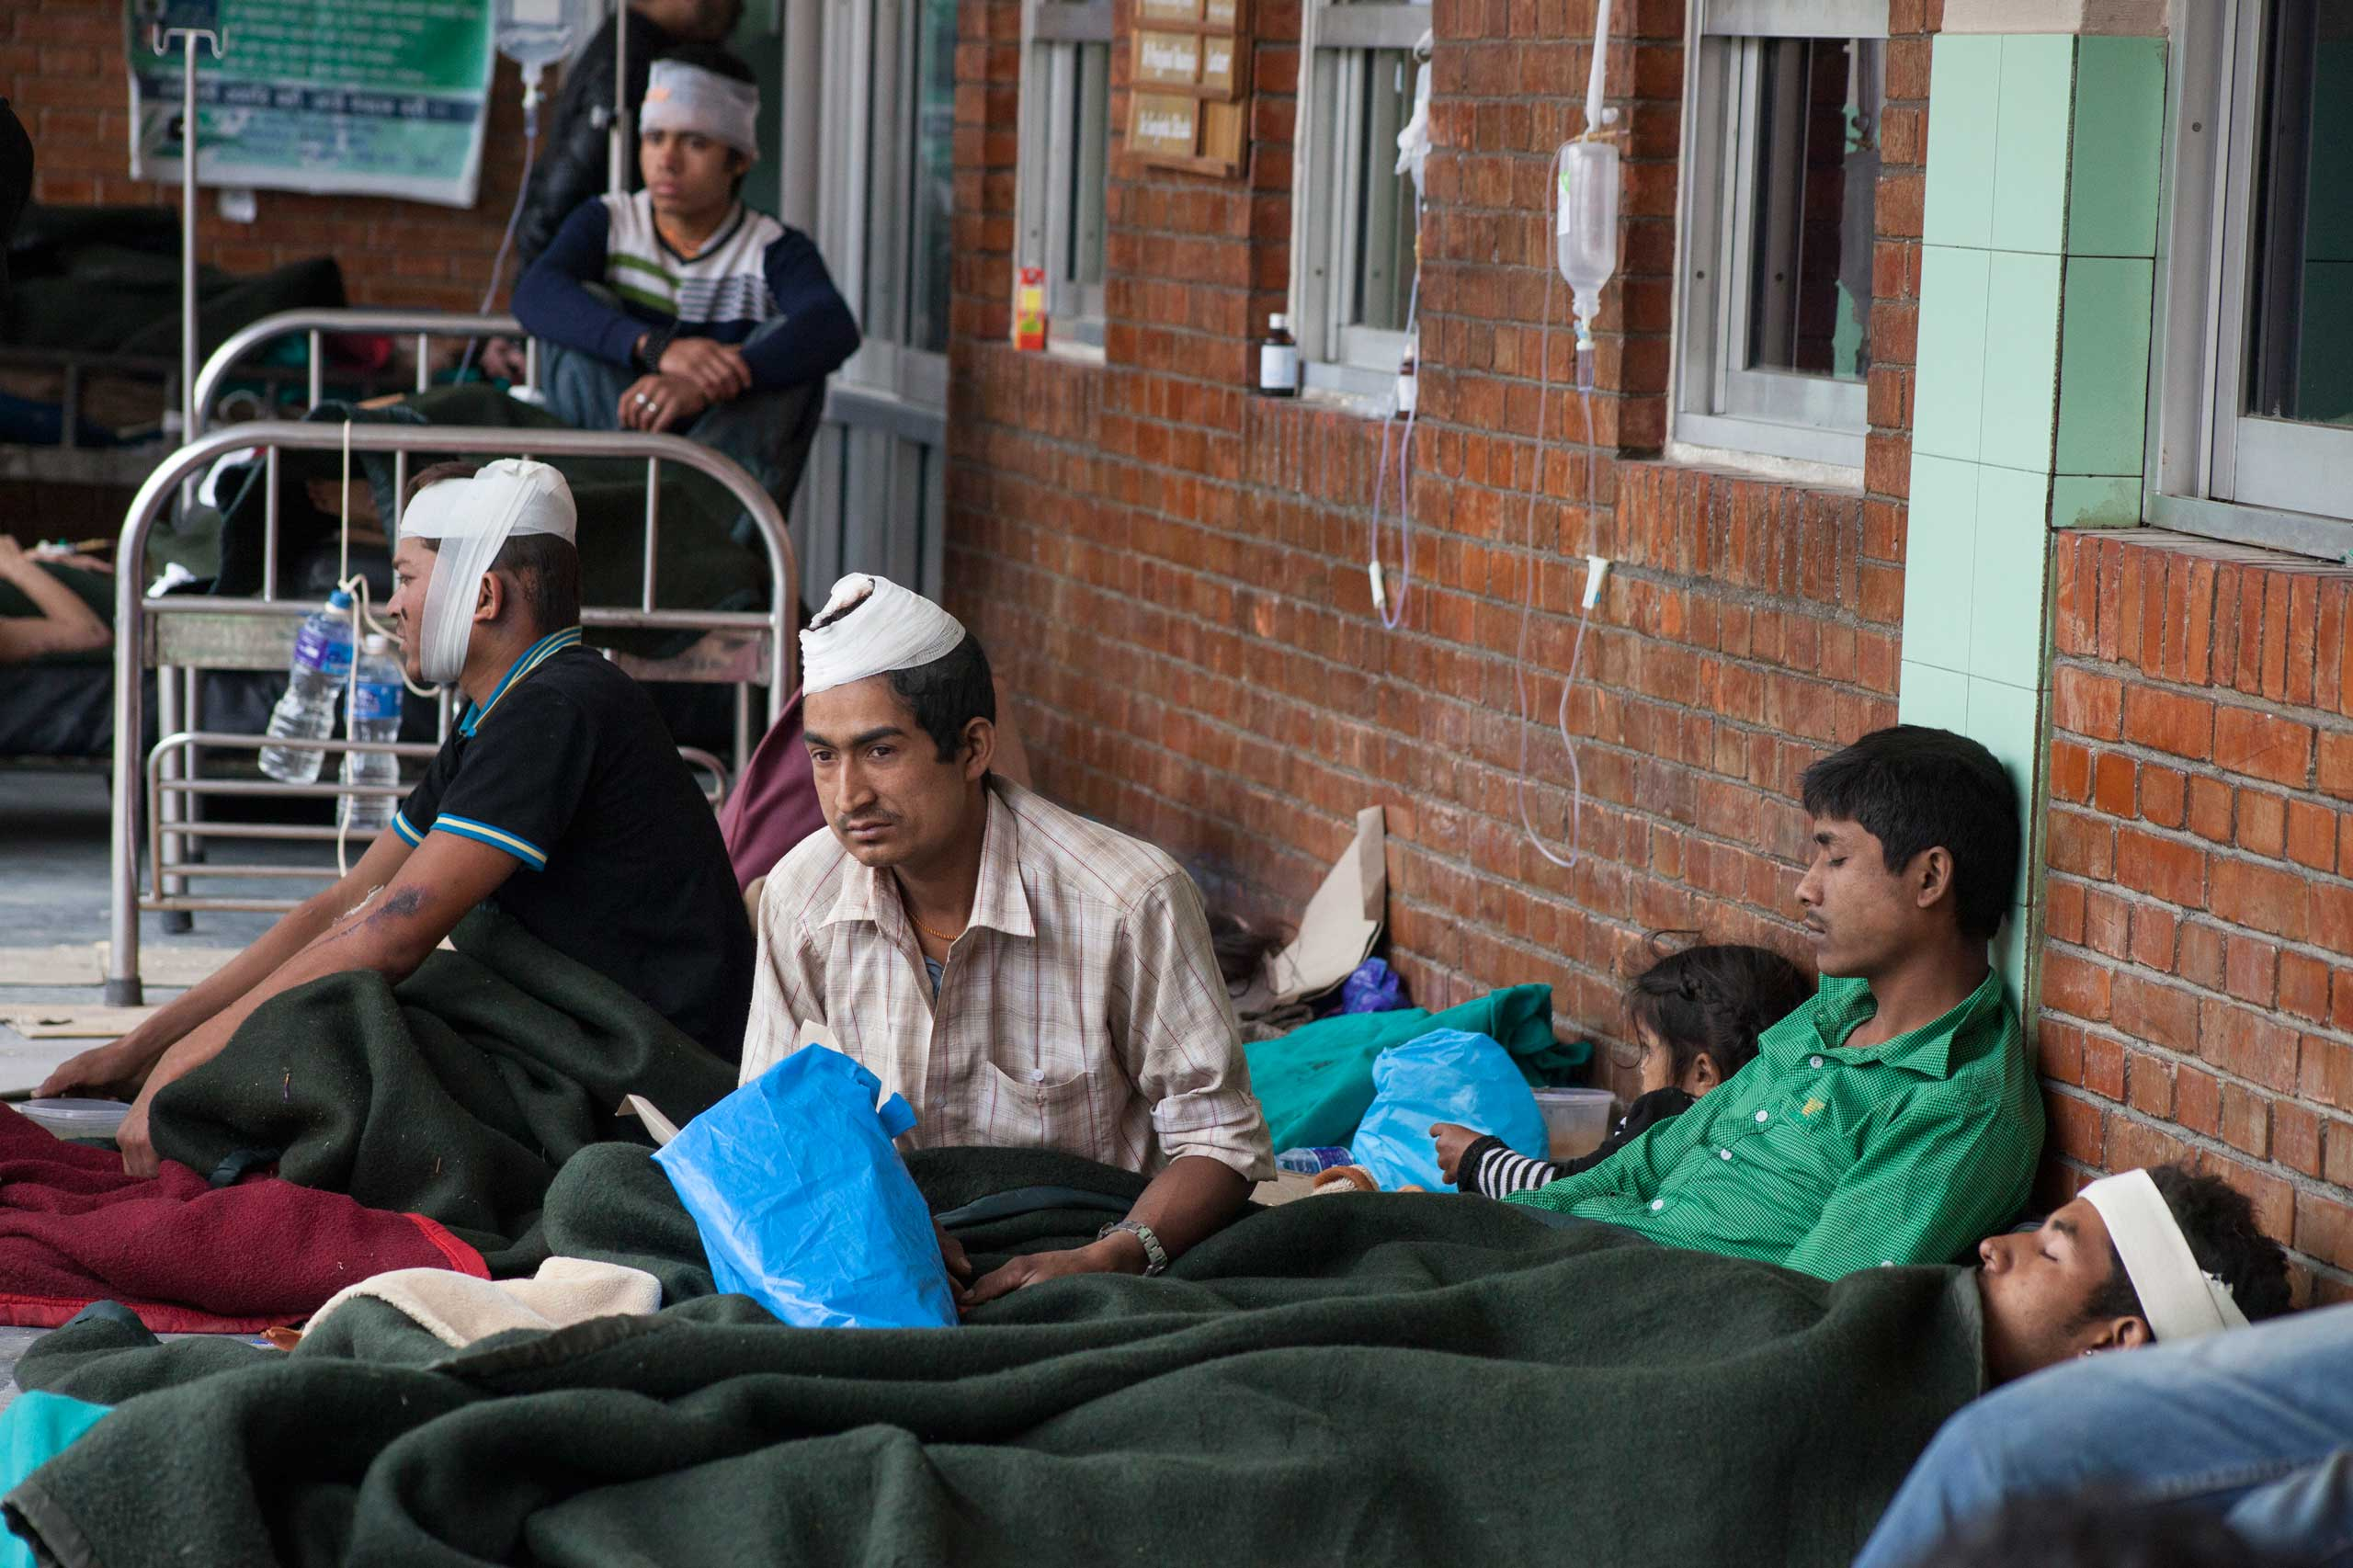 Injured people receive treatment at Tribhuvan University Teaching Hospital in Maharajgunj, Kathmandu, on April 26, 2015, one day after a massive earthquake hit Nepal.